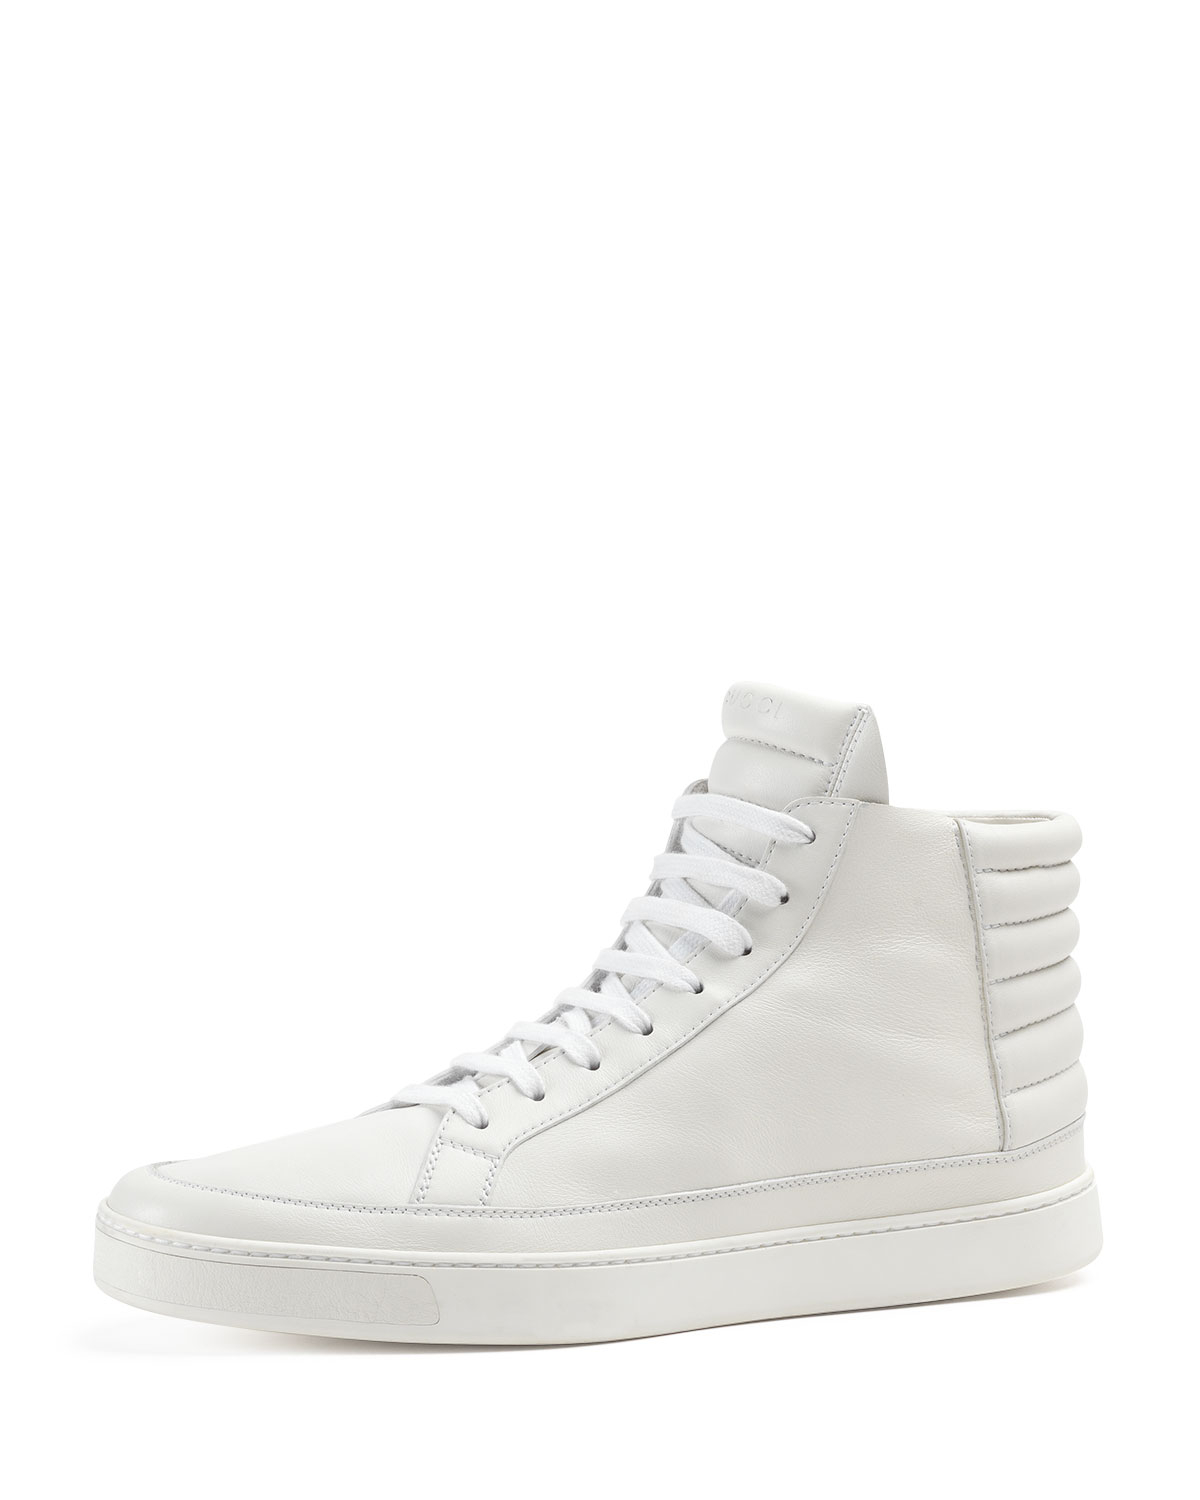 gucci leather high top sneaker in white for men lyst. Black Bedroom Furniture Sets. Home Design Ideas